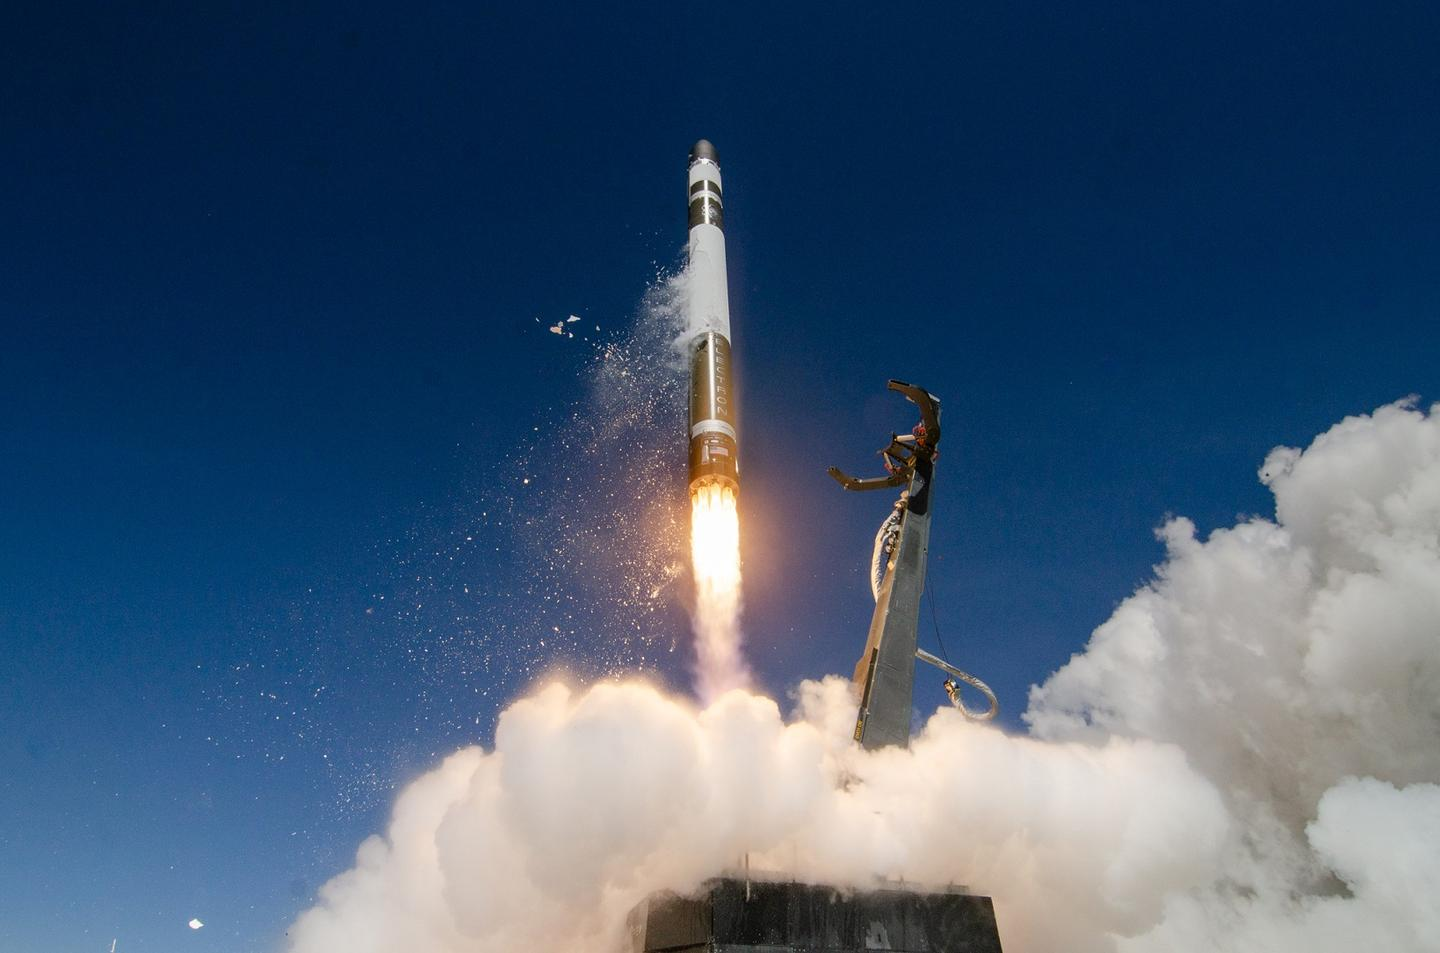 Rocket Lab's Electron booster lifts off during an earlier mission